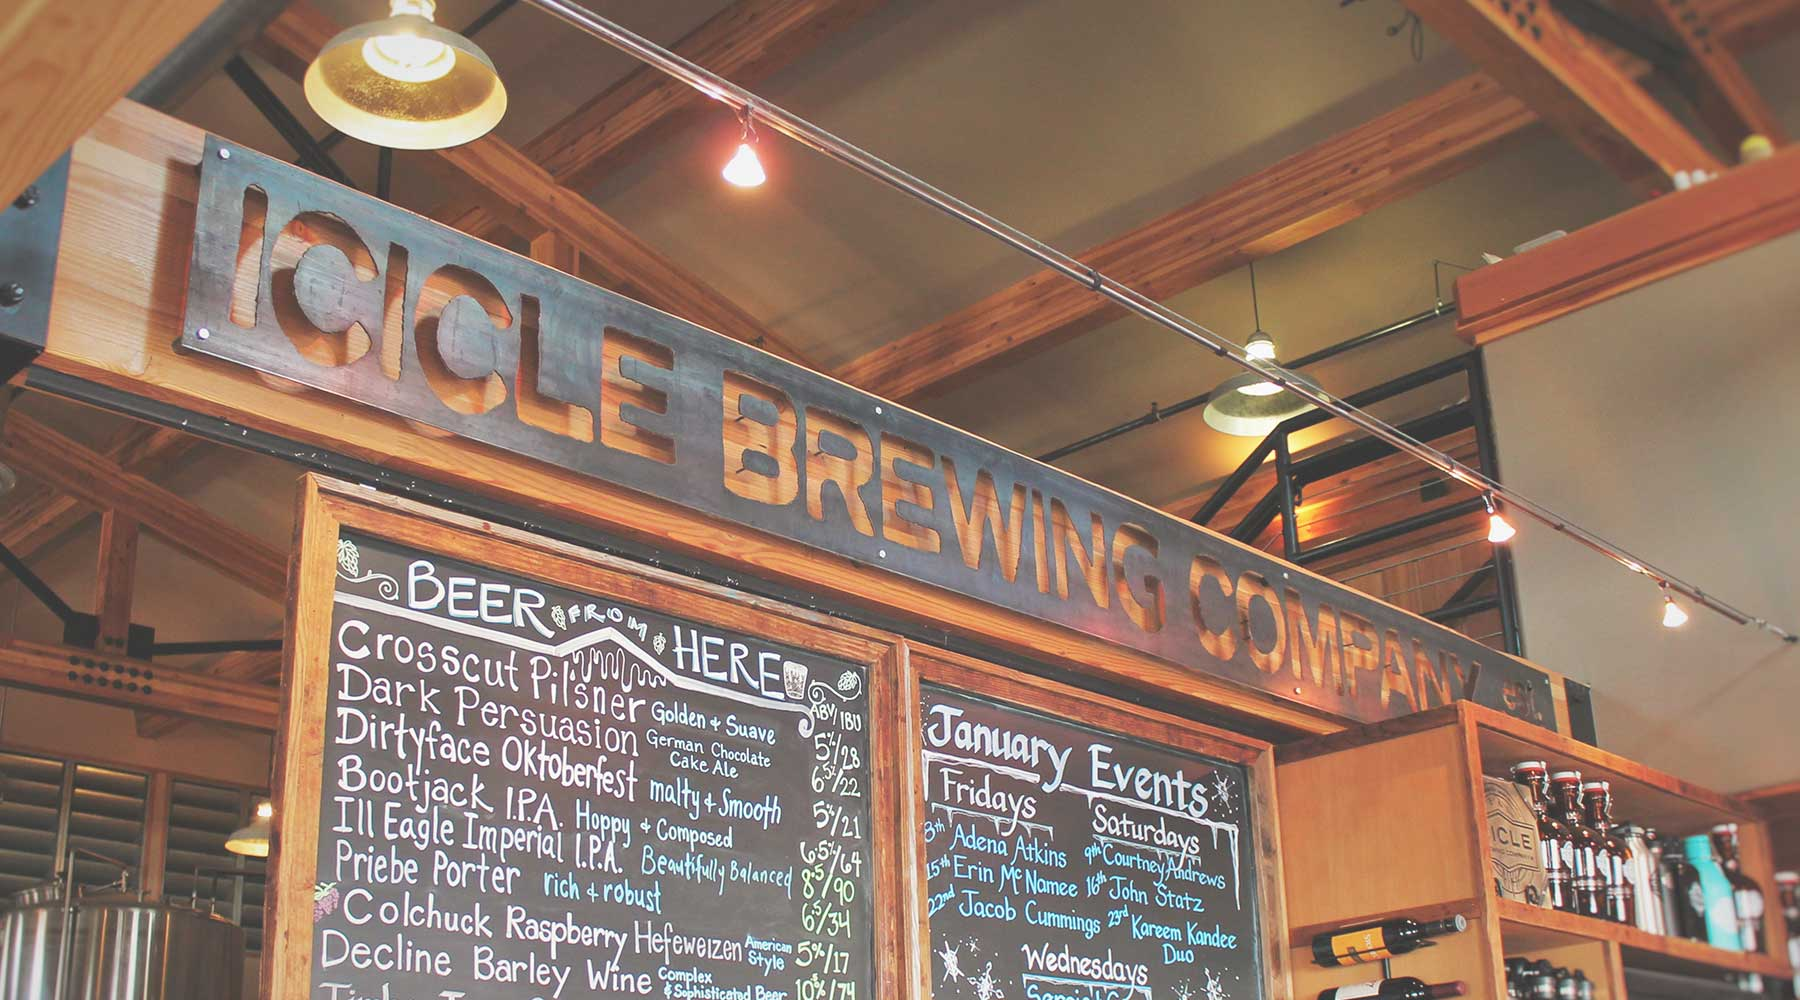 Icicle Brewing Company | Just Wine